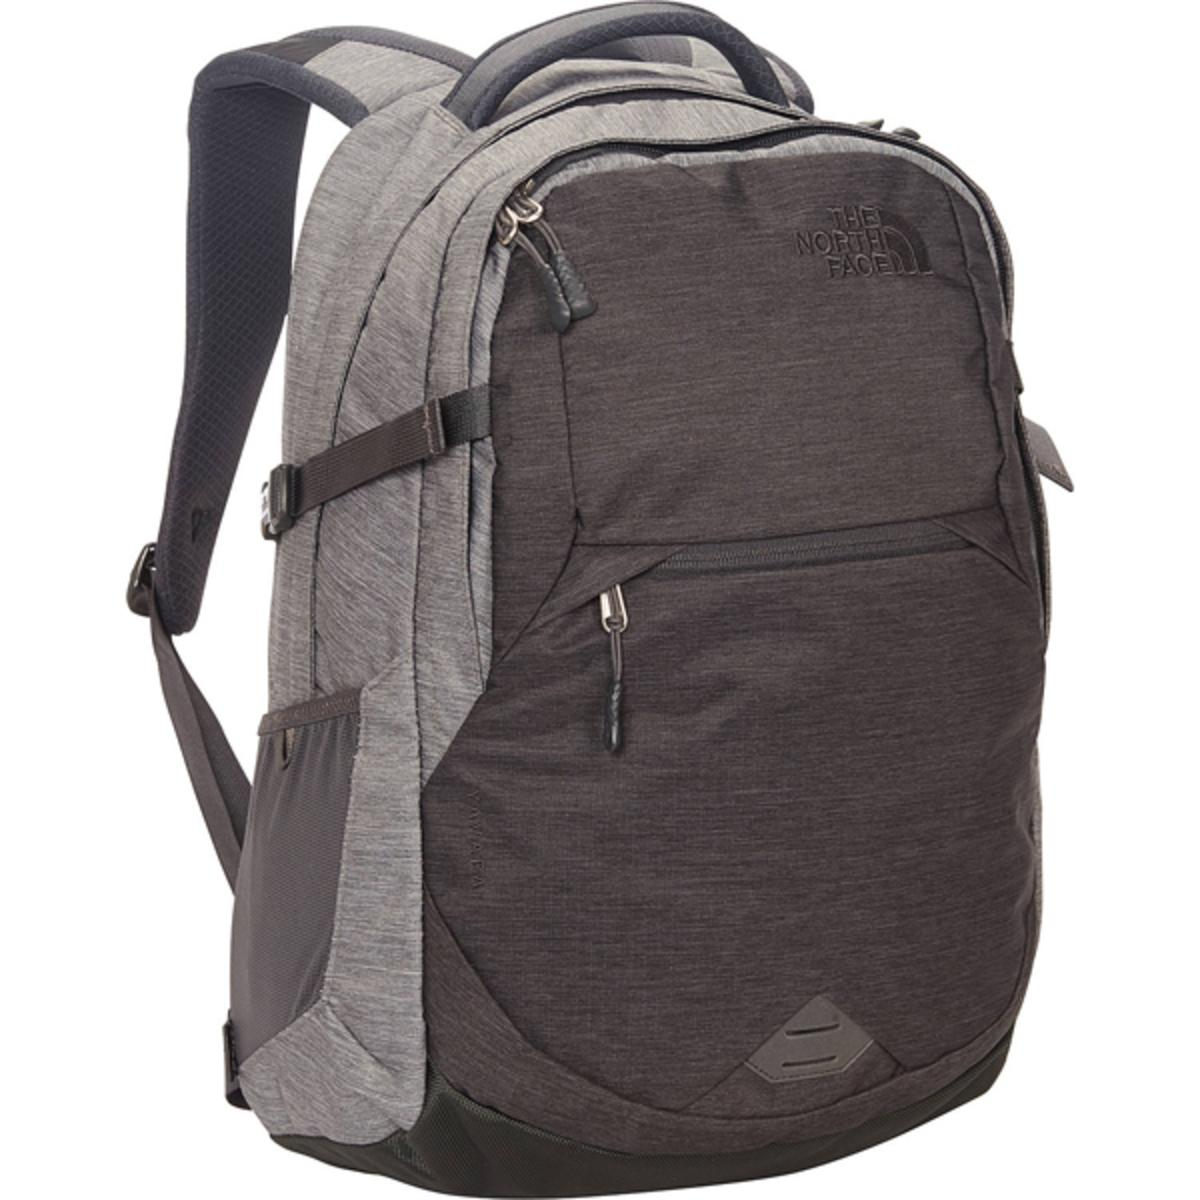 c82a01c31 The North Face Yavapai Laptop Backpack - CEAGESP